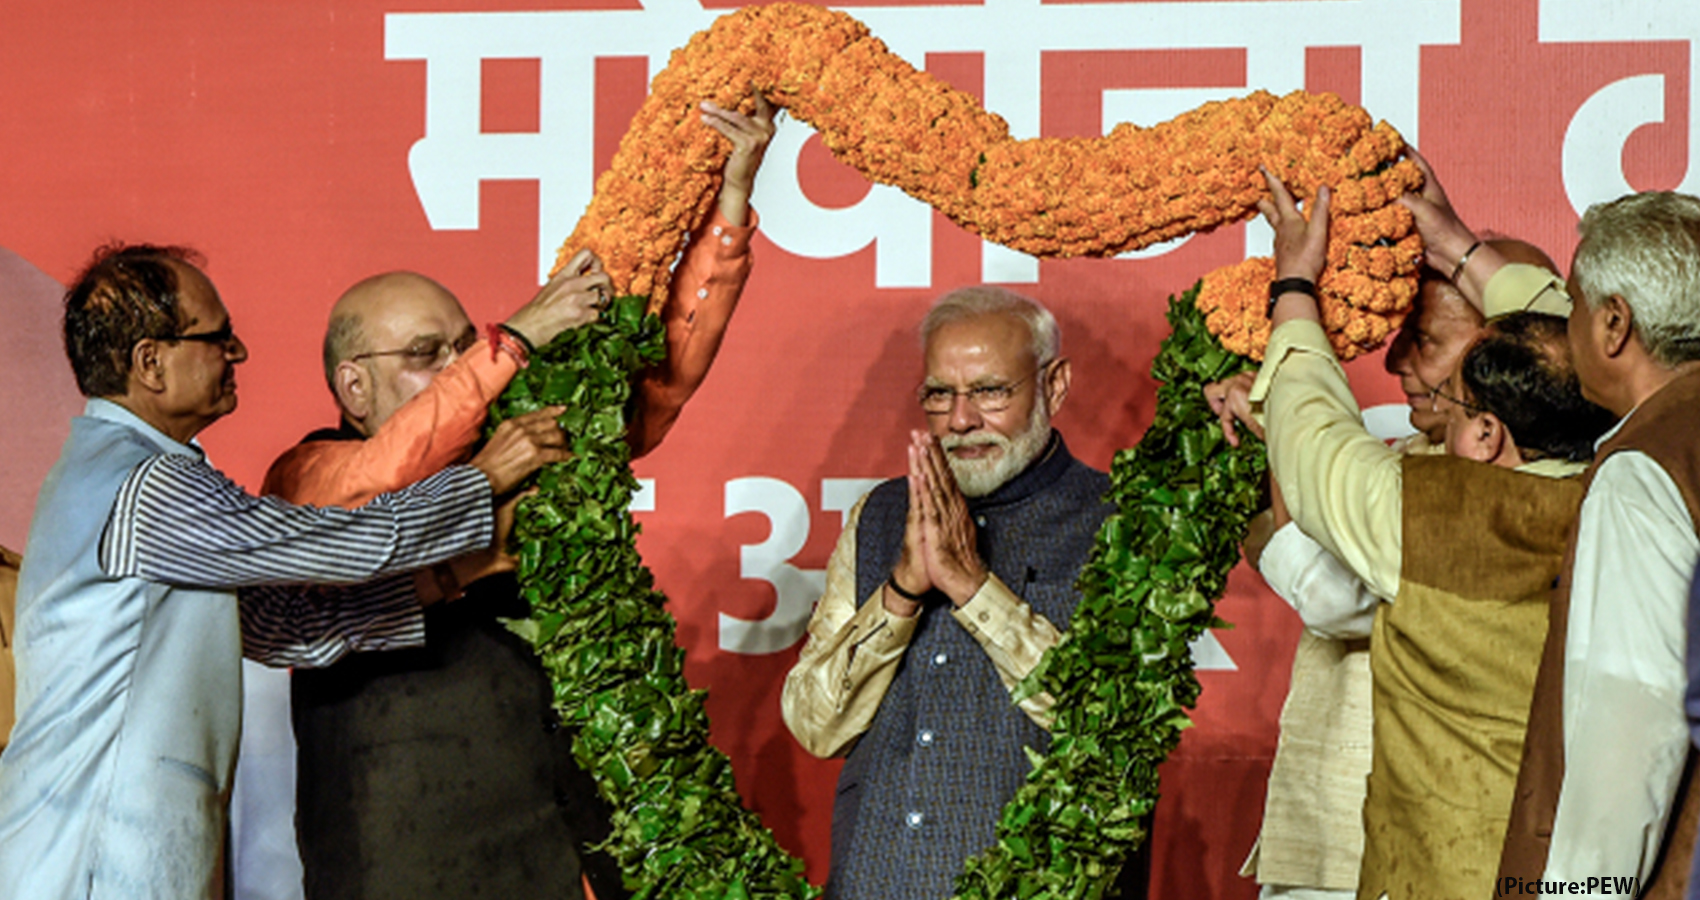 In India, Hindu Support For Modi's Party Varies By Region And Is Tied To Beliefs About Diet And Language